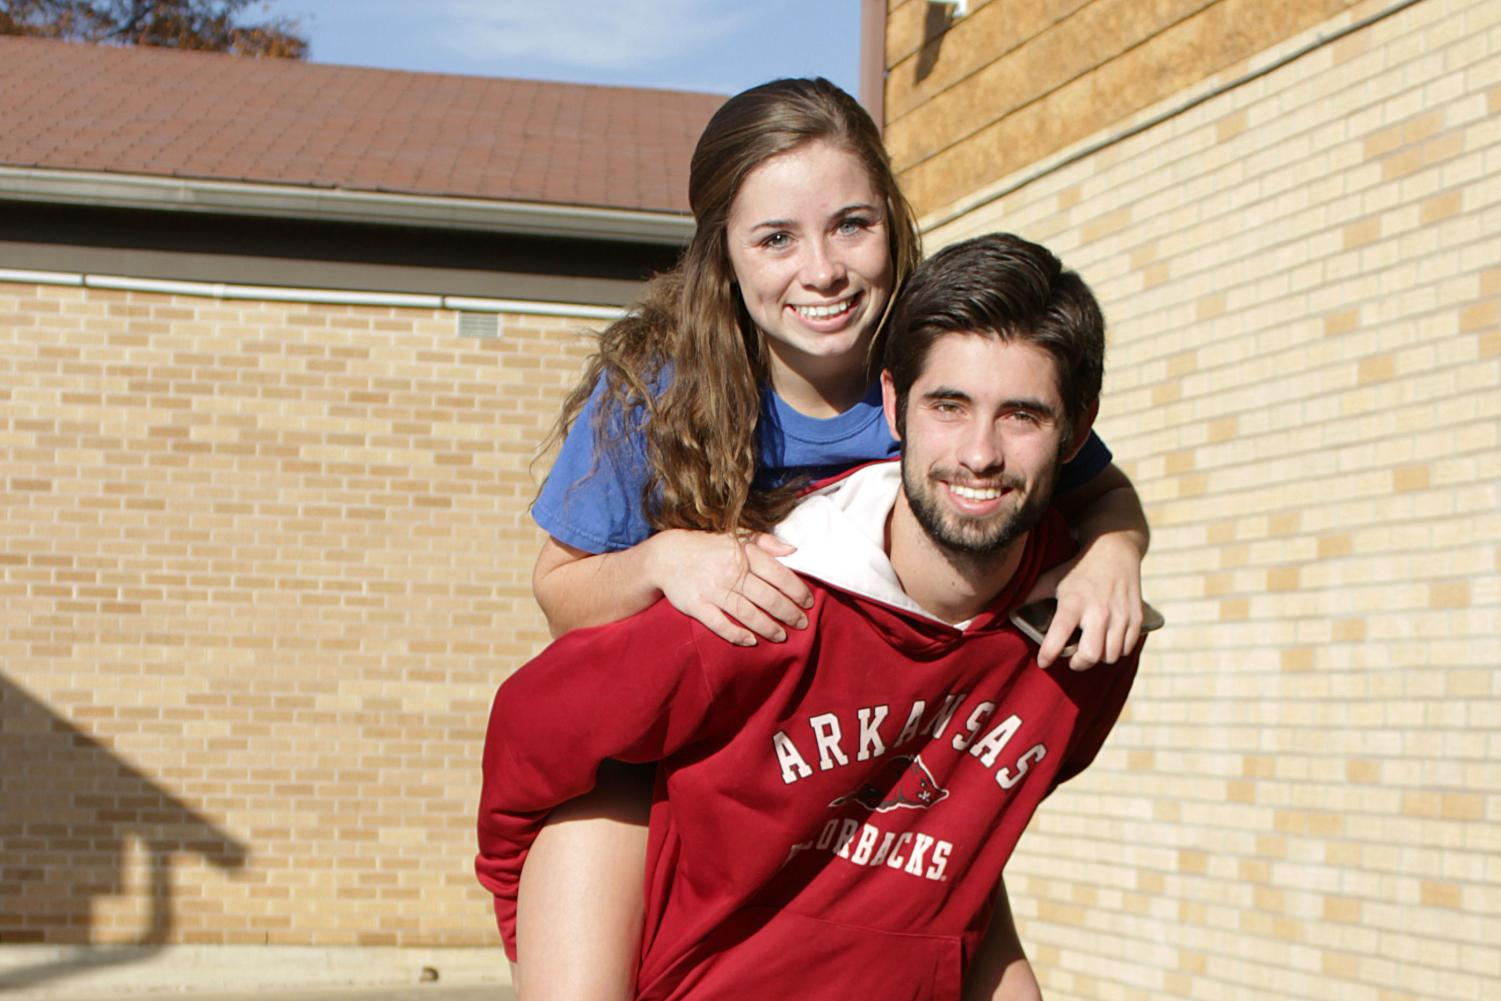 """After losing their mother in 2011, siblings senior Parker Ray and junior Cassady Ray relied on each other for support. """"As siblings, since we've [both] gone through [our mom passing away], we can connect with each other better,"""" Cassaday Ray said. """"It made us bond more because it was so hard and we had to be there for each other."""""""